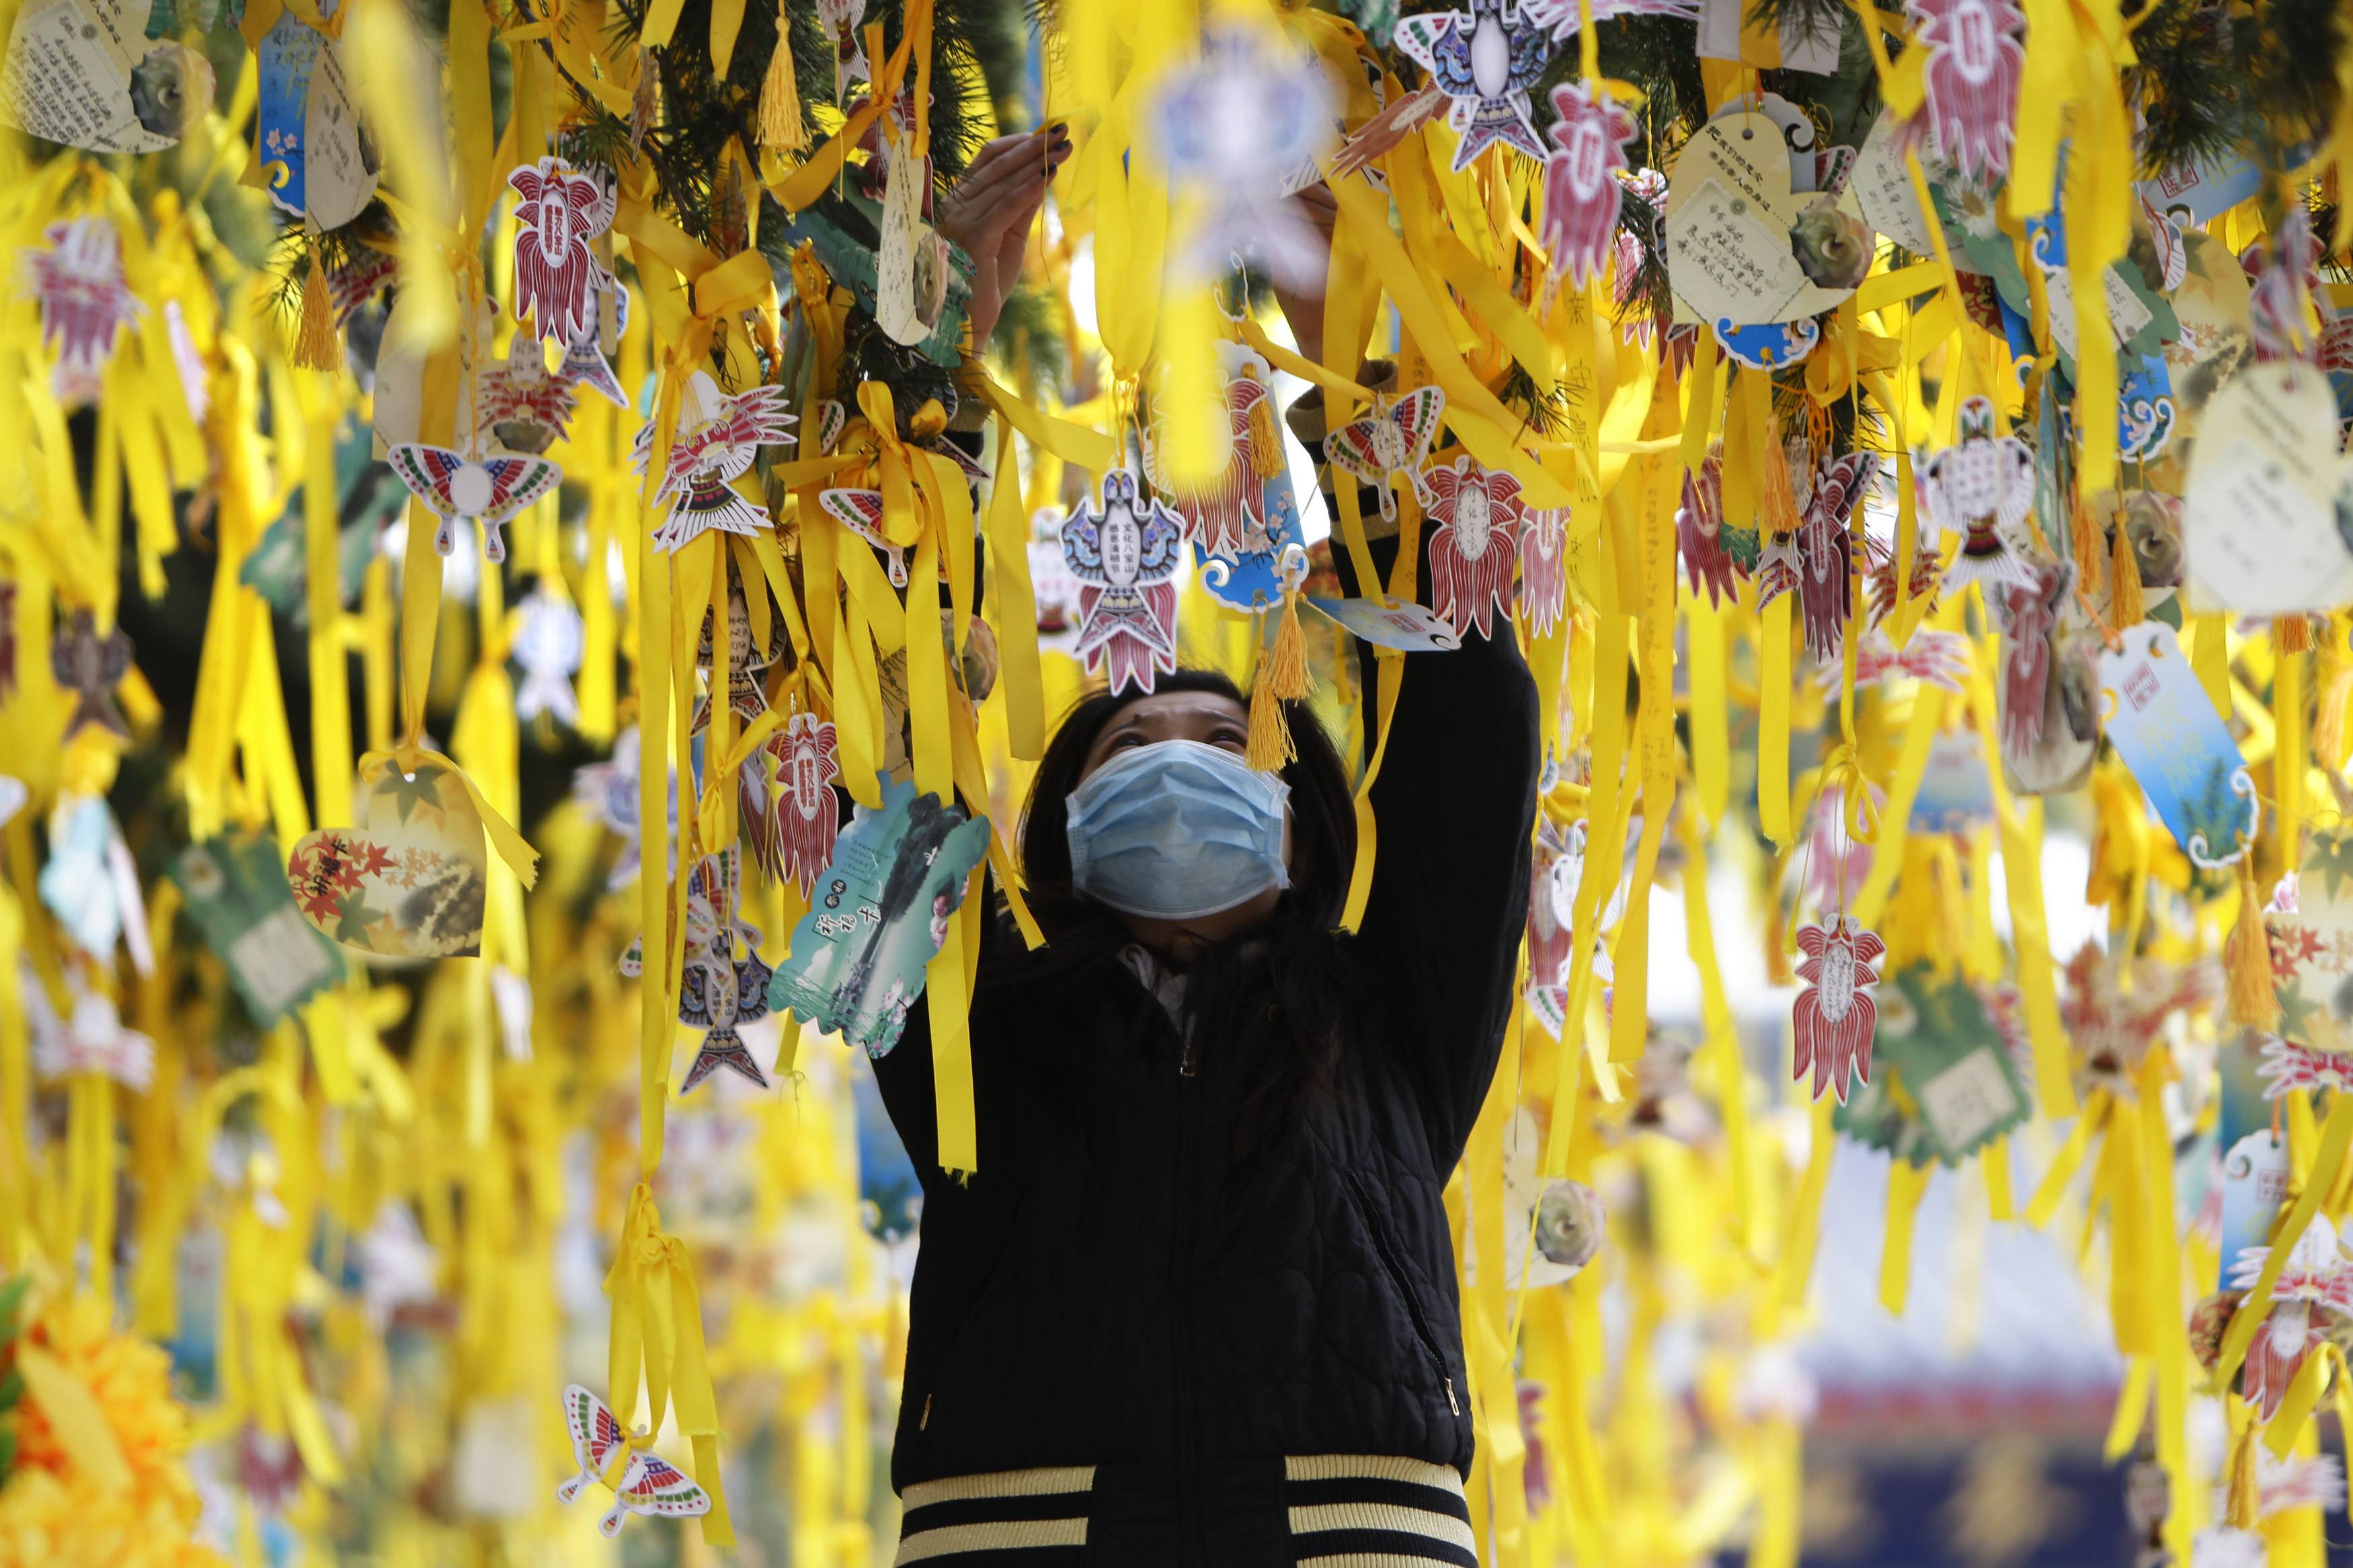 A woman hangs a yellow ribbon on a tree in remembrance of her deceased relative during Qingming Festival, or Tomb Sweeping Day, at the Babaoshan Cemetery in Beijing. The festival, which falls on April 4 this year, is a day for the Chinese to remember and honour their ancestors. A new service standard aimed at regulating the quality of China's public cemeteries has been launched recently by the Ministry of Civil Affairs to cope with the country's ageing population, according to Xinhua News Agency.